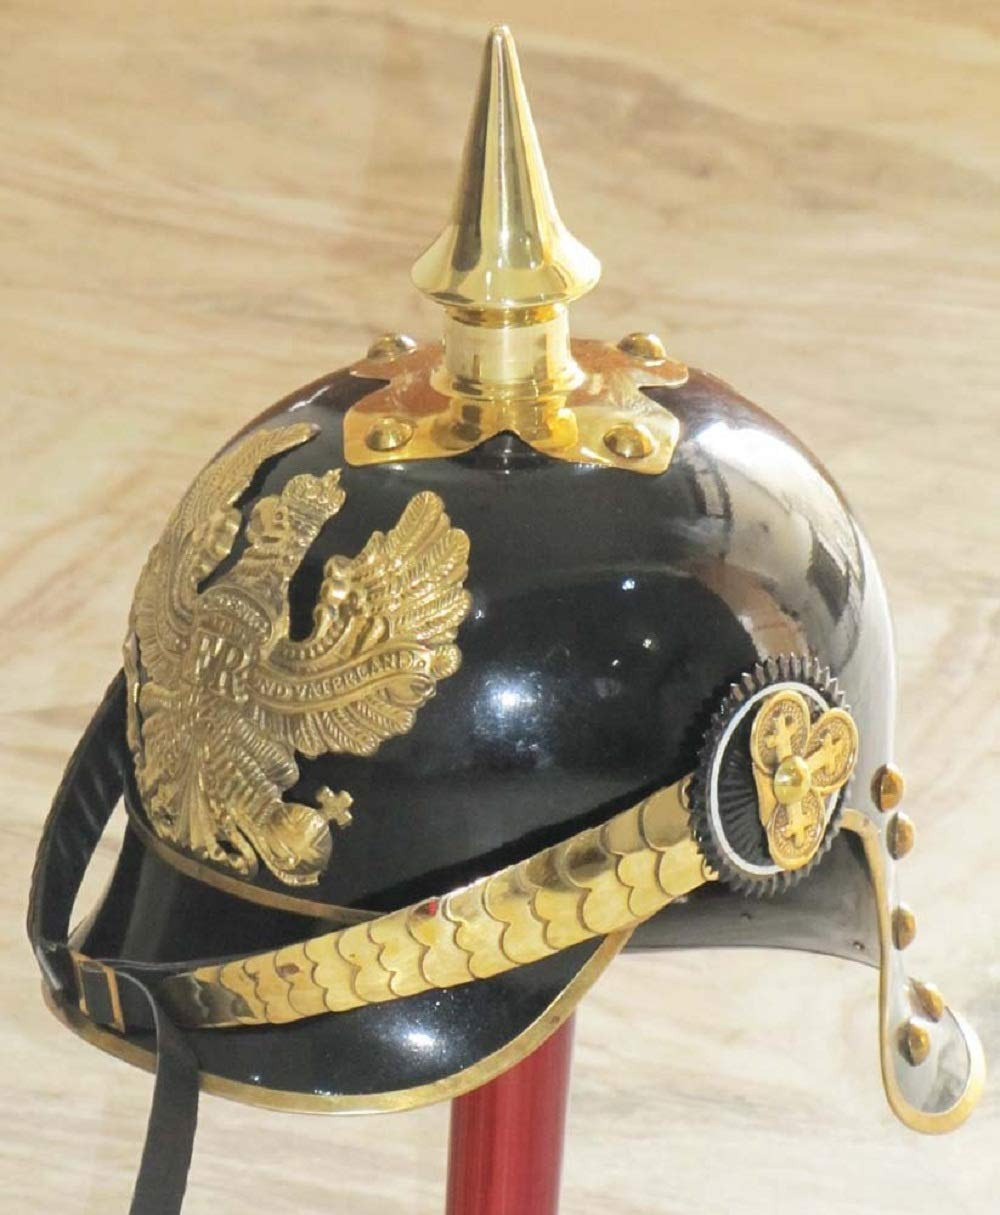 HANDMADE VINTAGE ART WW I&II GERMAN PRUSSIAN PICKELHAUBE HELMET BRASS ACCENTS IMPERIAL OFFICER SPIKE HELMET